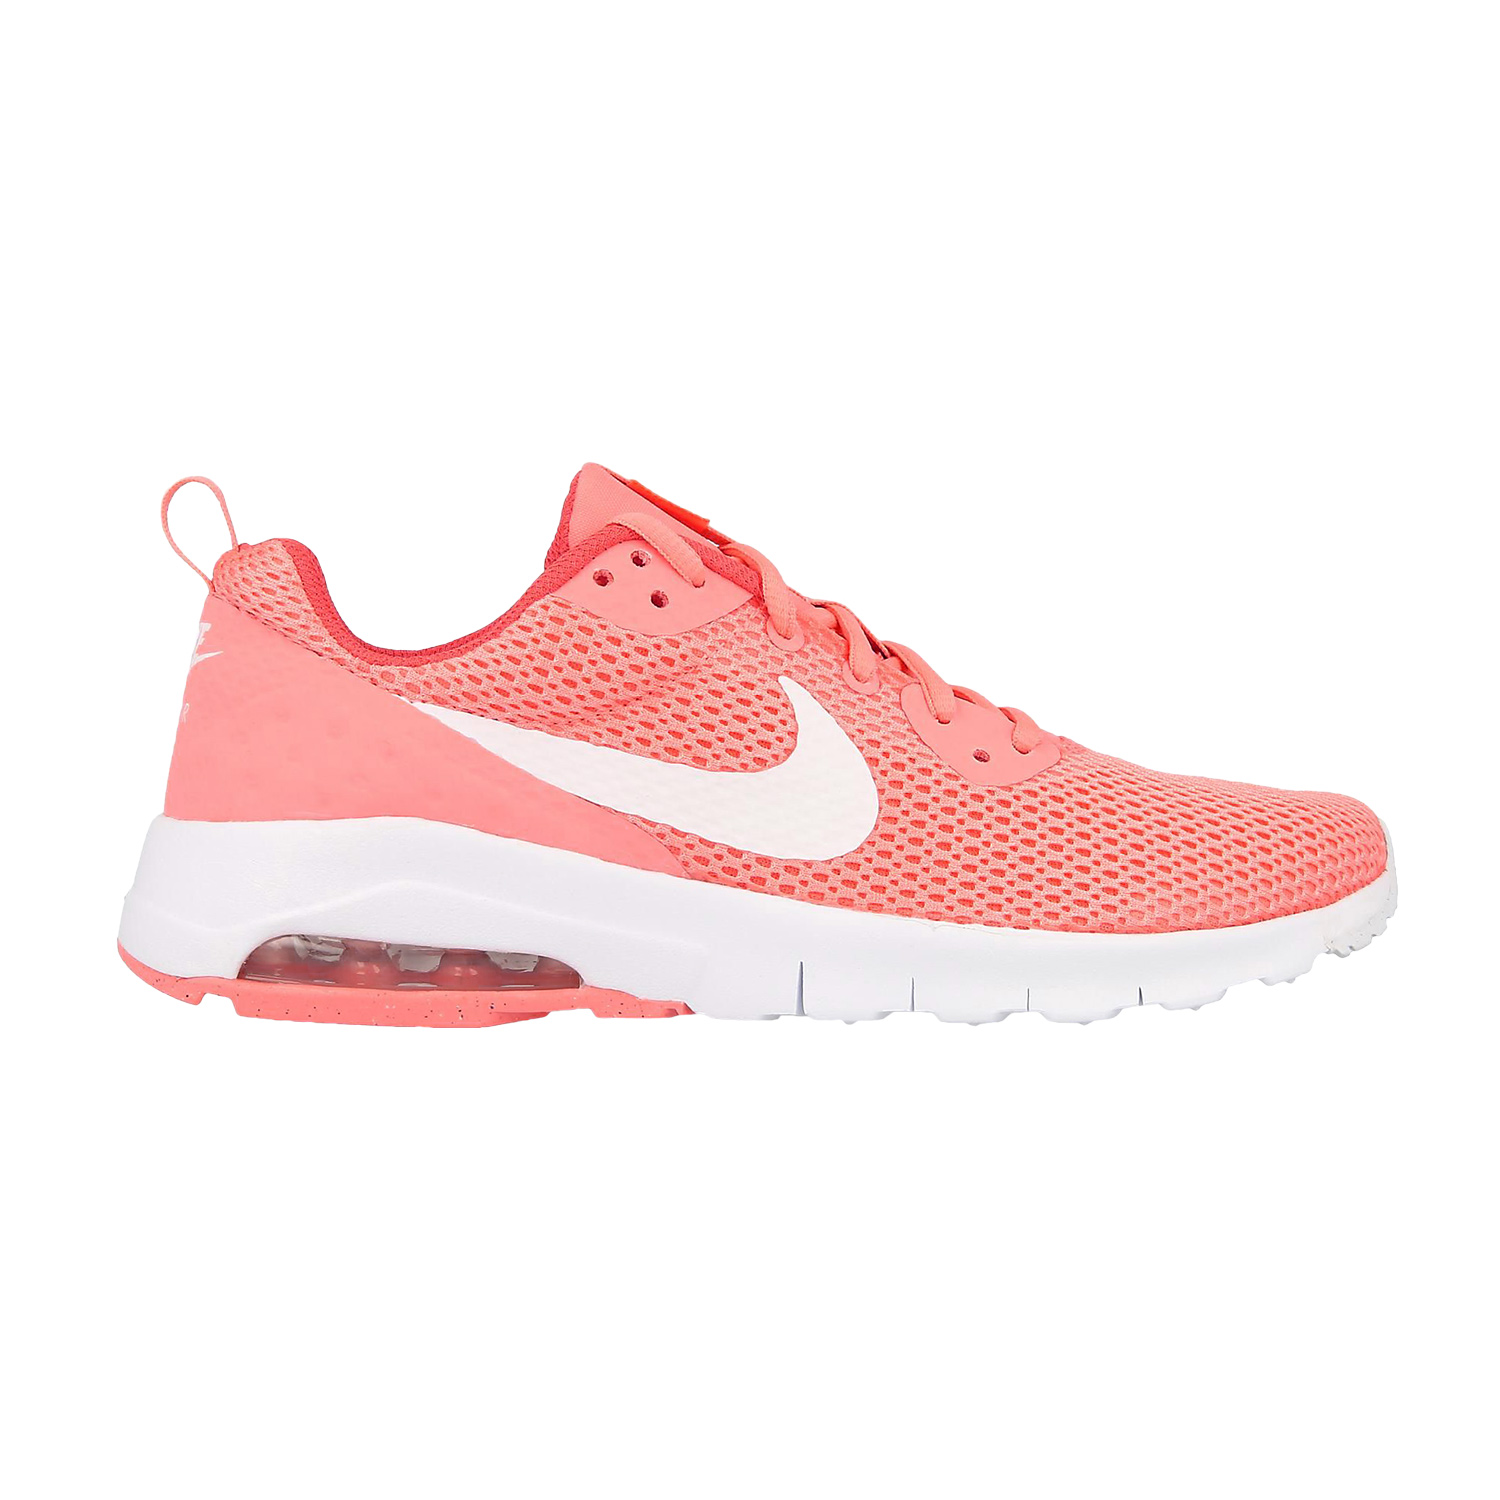 d417036f7e1902 Nike Air Max Motion Low - Kinder Sneaker Freizeitschuhe - 917654-601 pink  001